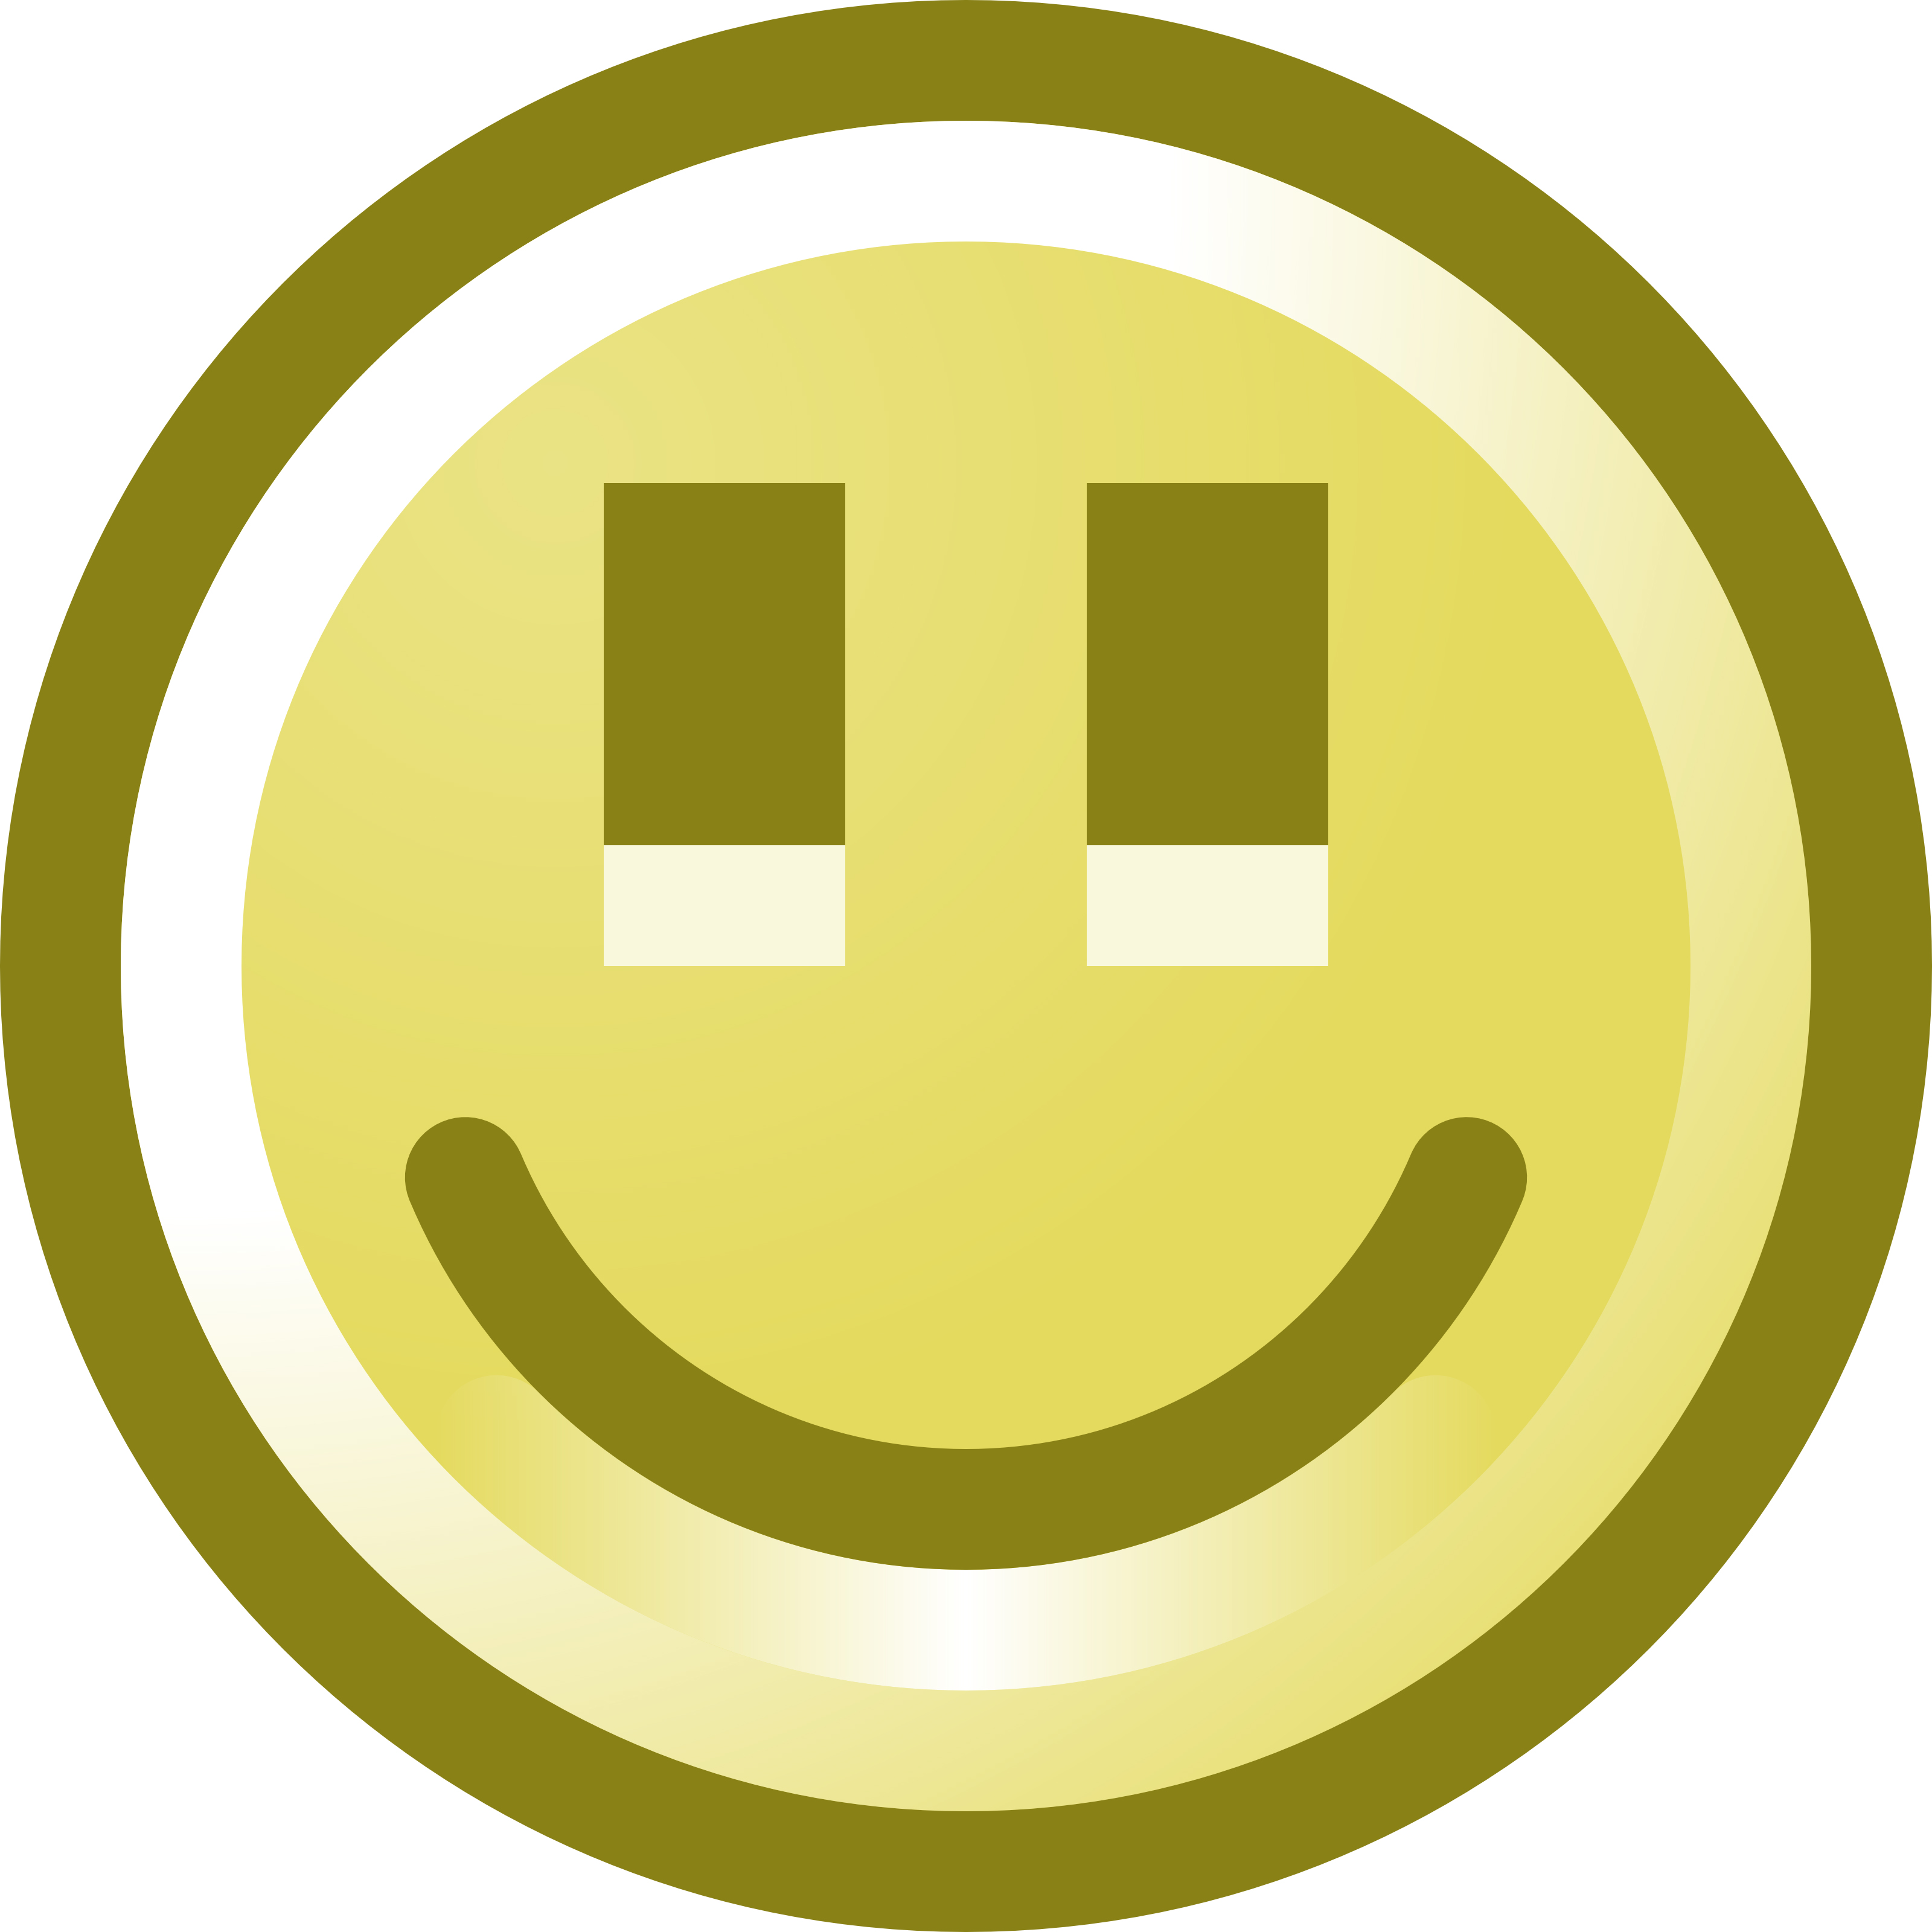 Smileys clipart man Images Clipart Smiley Clip Free